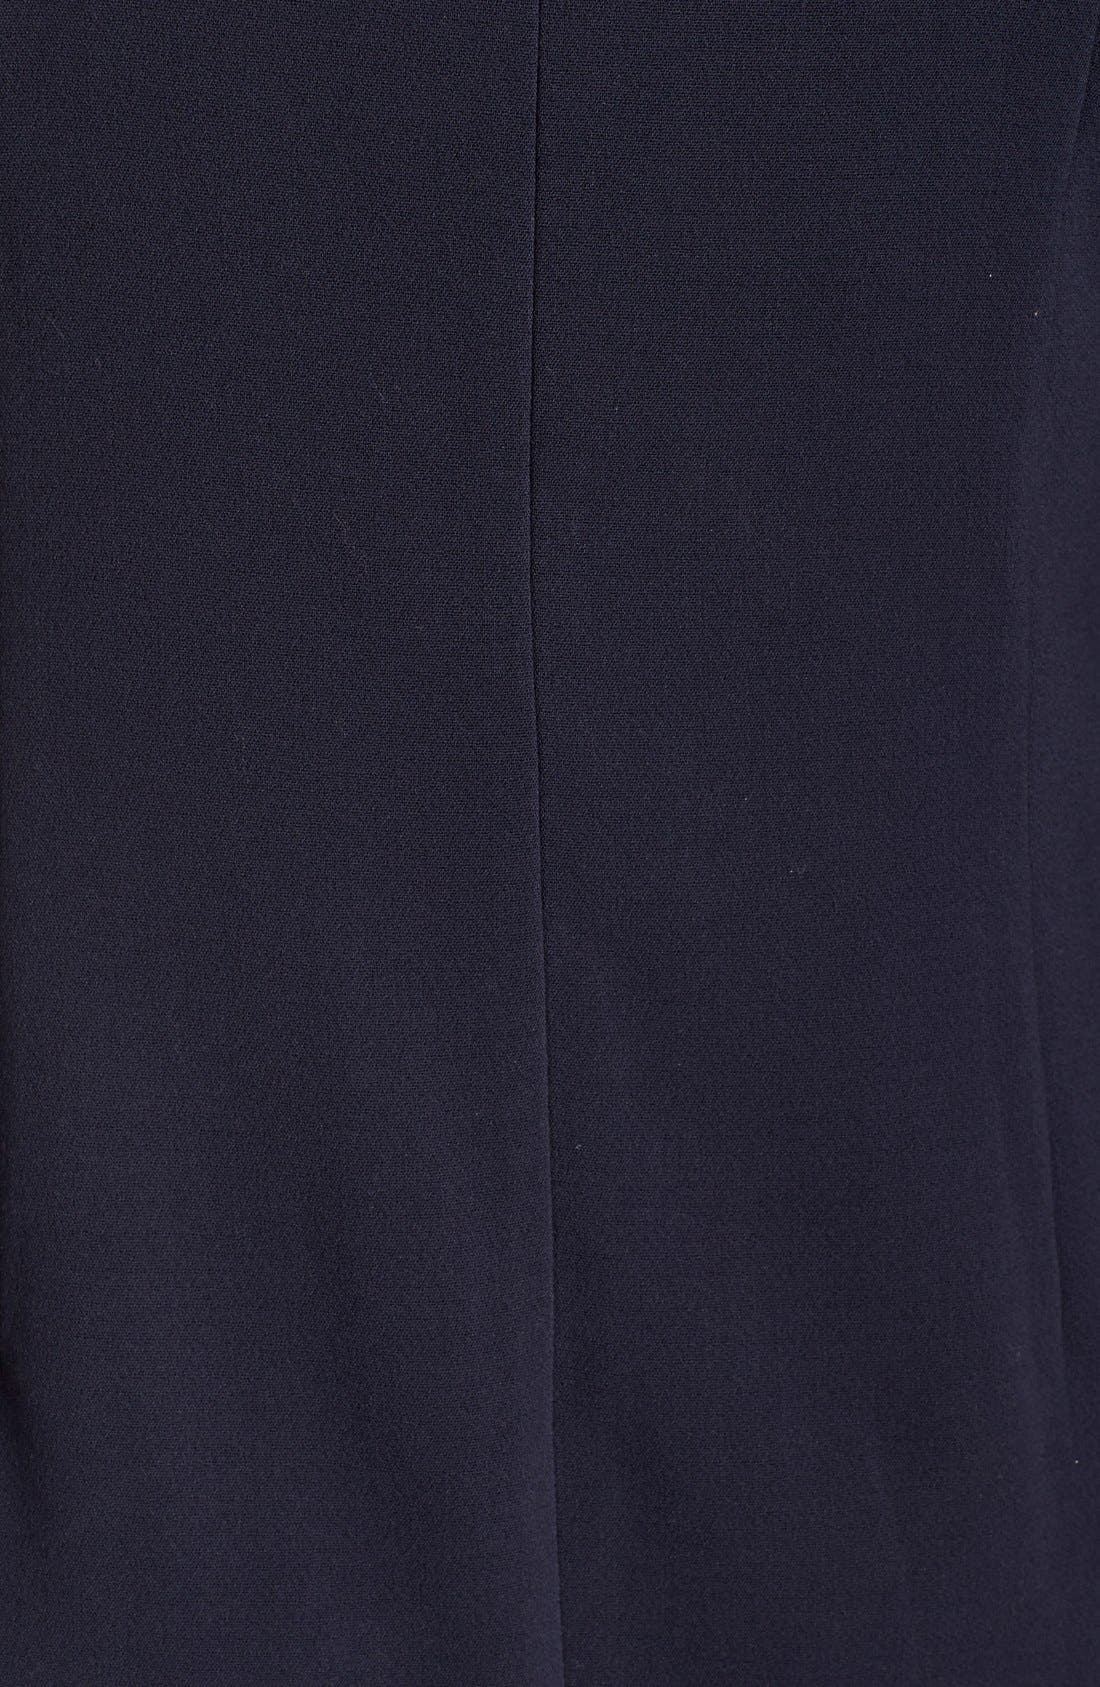 Pocket Detail Shift Dress,                             Alternate thumbnail 31, color,